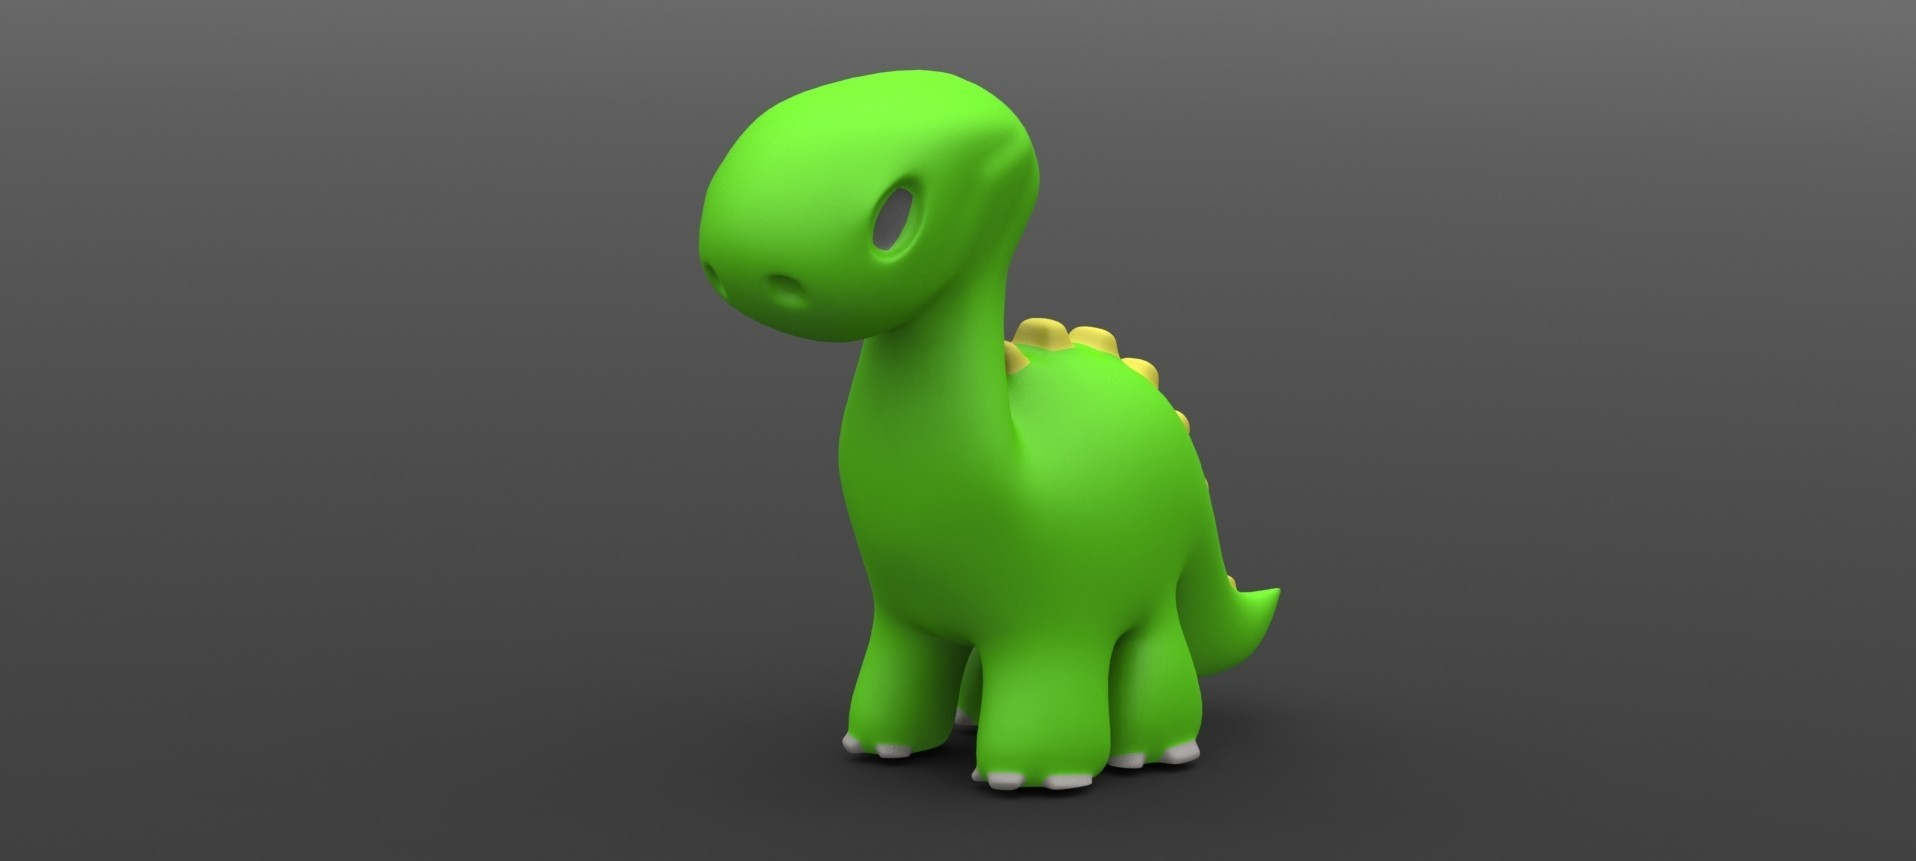 Dino toy.JPG Download STL file Dino toy • Template to 3D print, Majs84